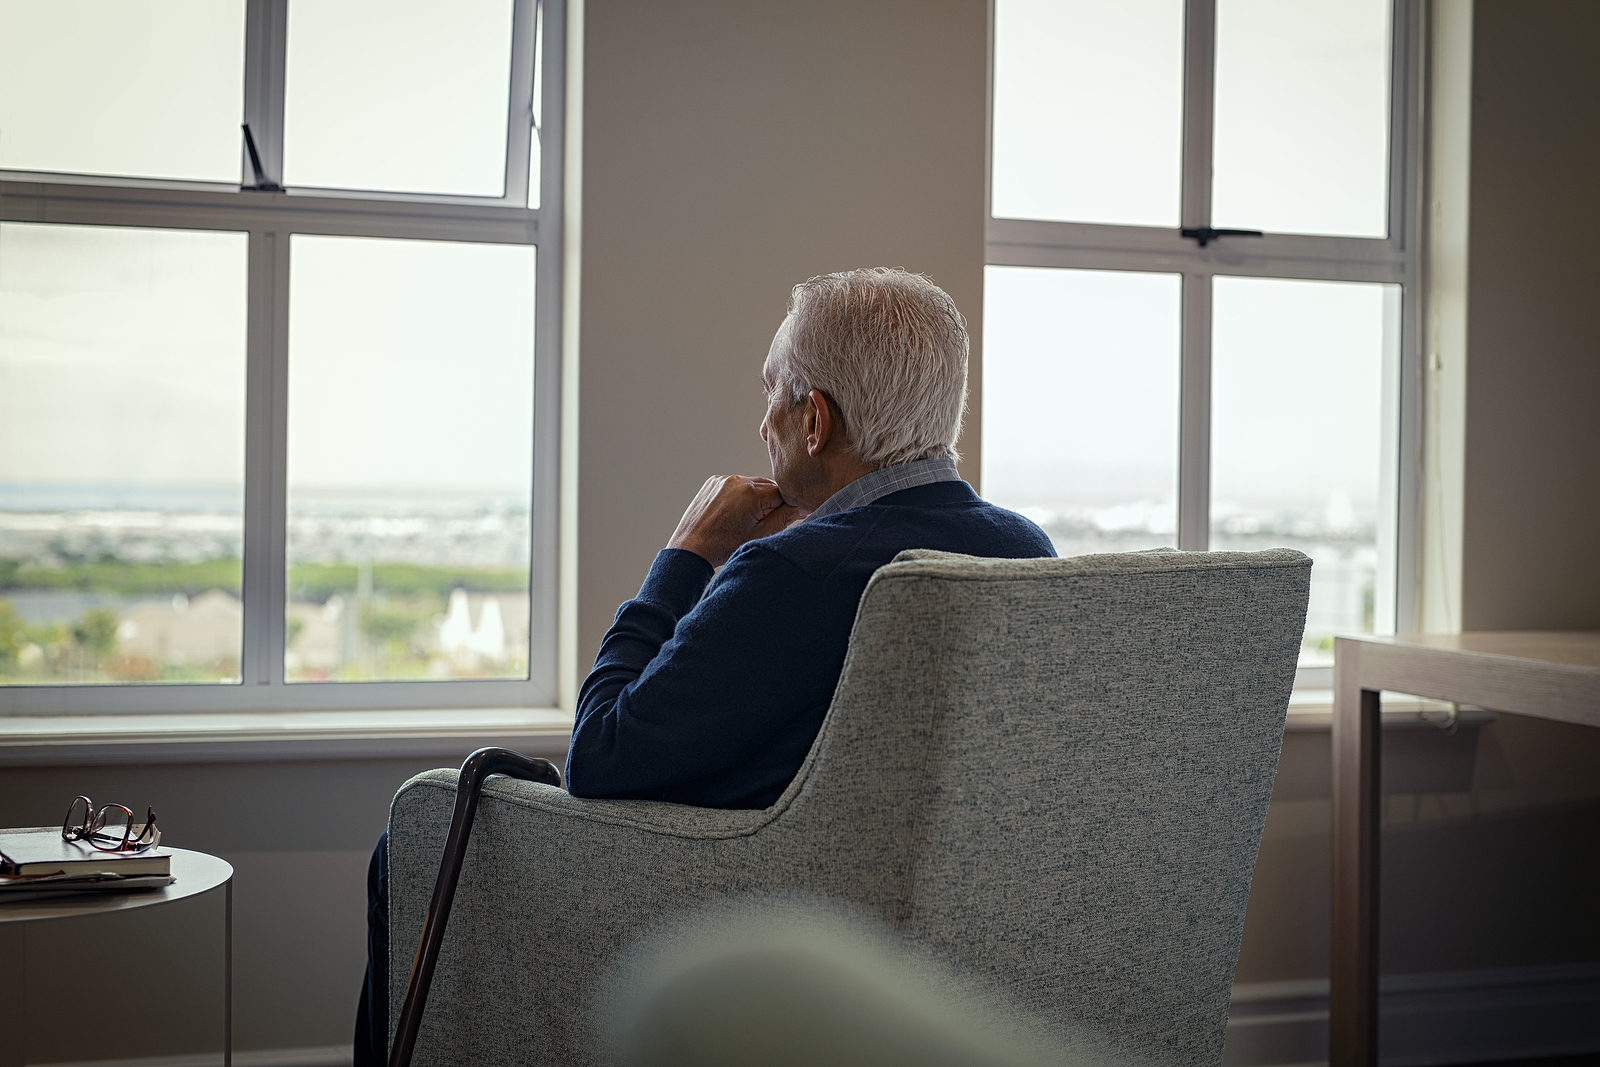 rear view of an elderly man sitting alone in an armchair looking out the window